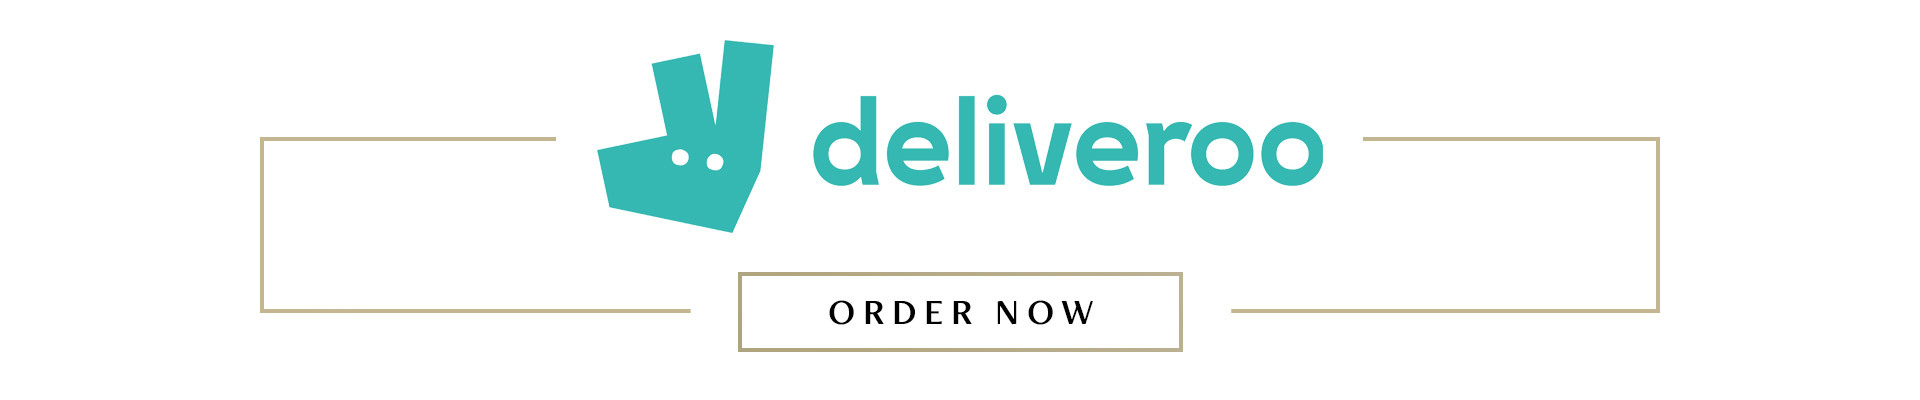 browns-deliveroo-banner-thin.jpg